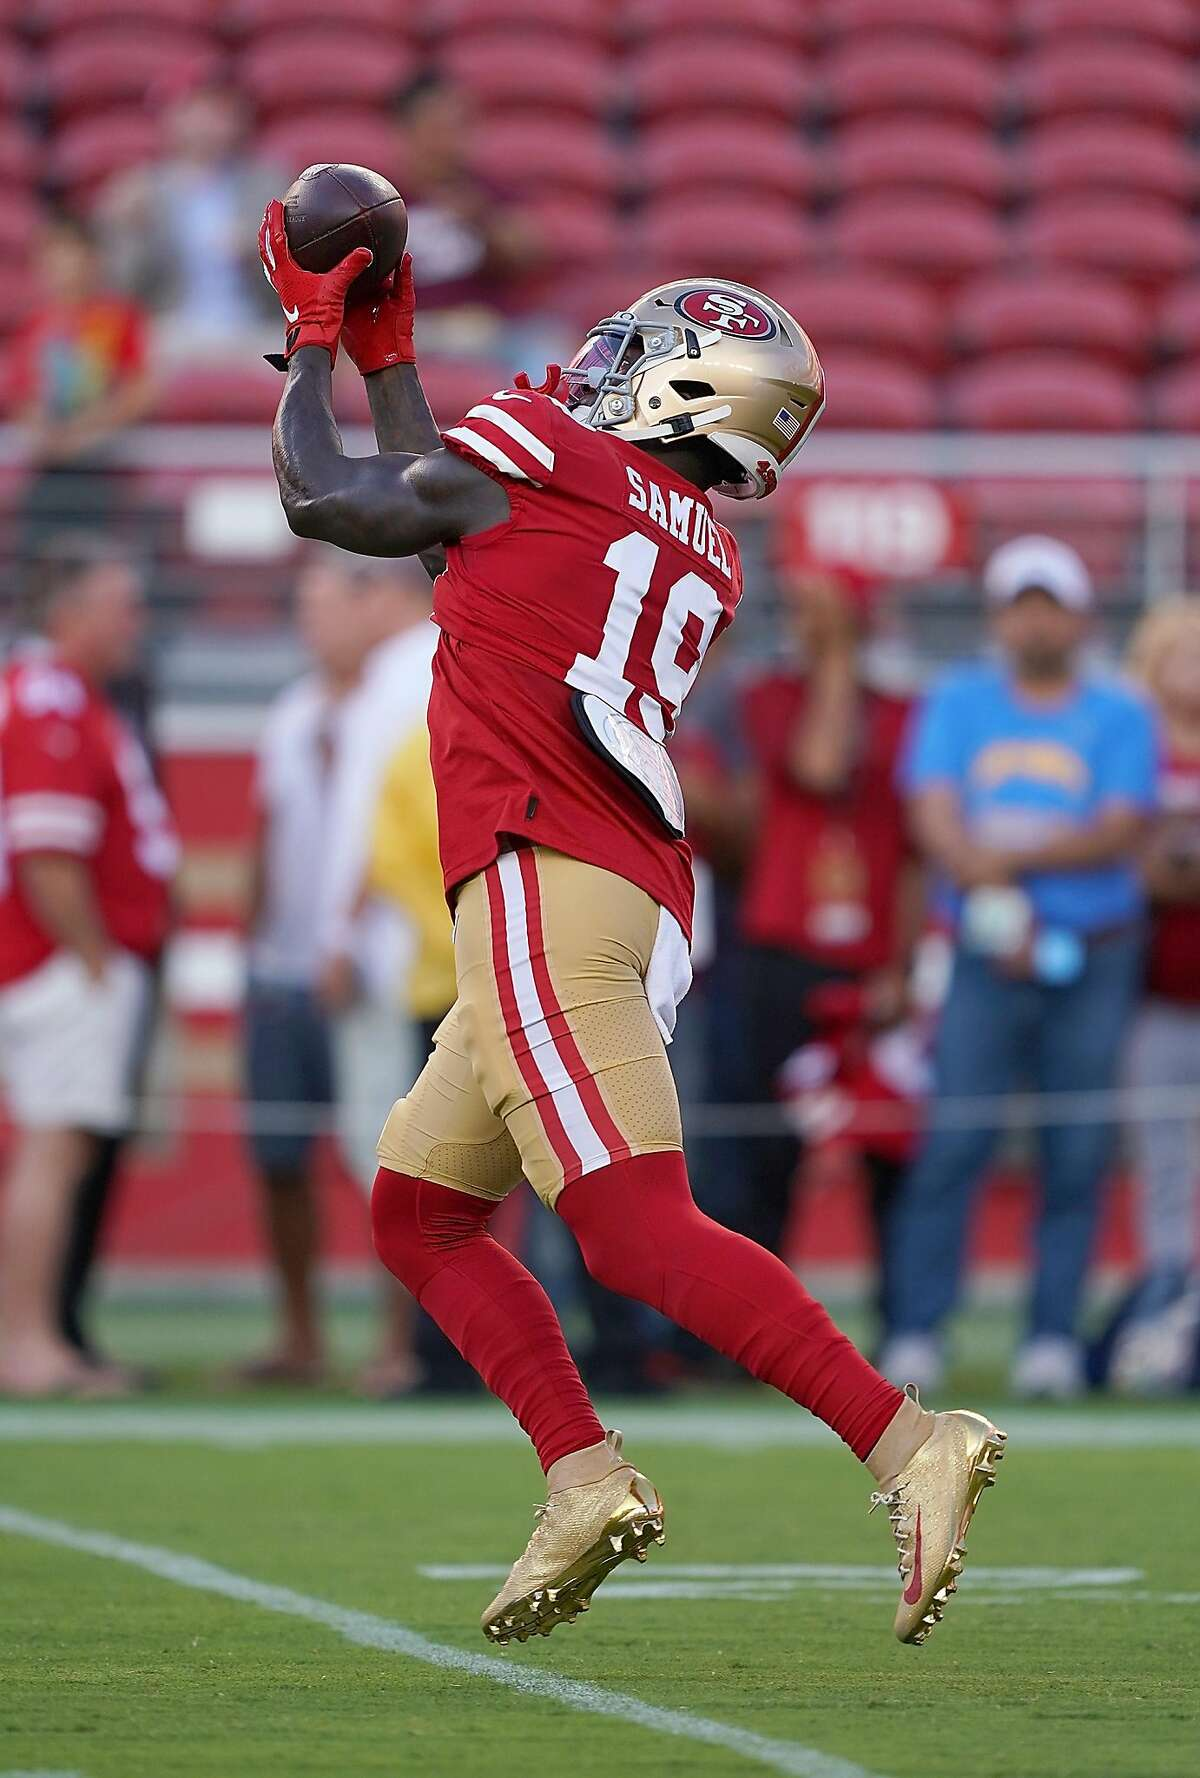 Deebo Samuel #19 of the San Francisco 49ers warms up during pregame warm ups prior to the start of an NFL football game against the Los Angeles Chargers at Levi's Stadium on August 29, 2019 in Santa Clara, California.